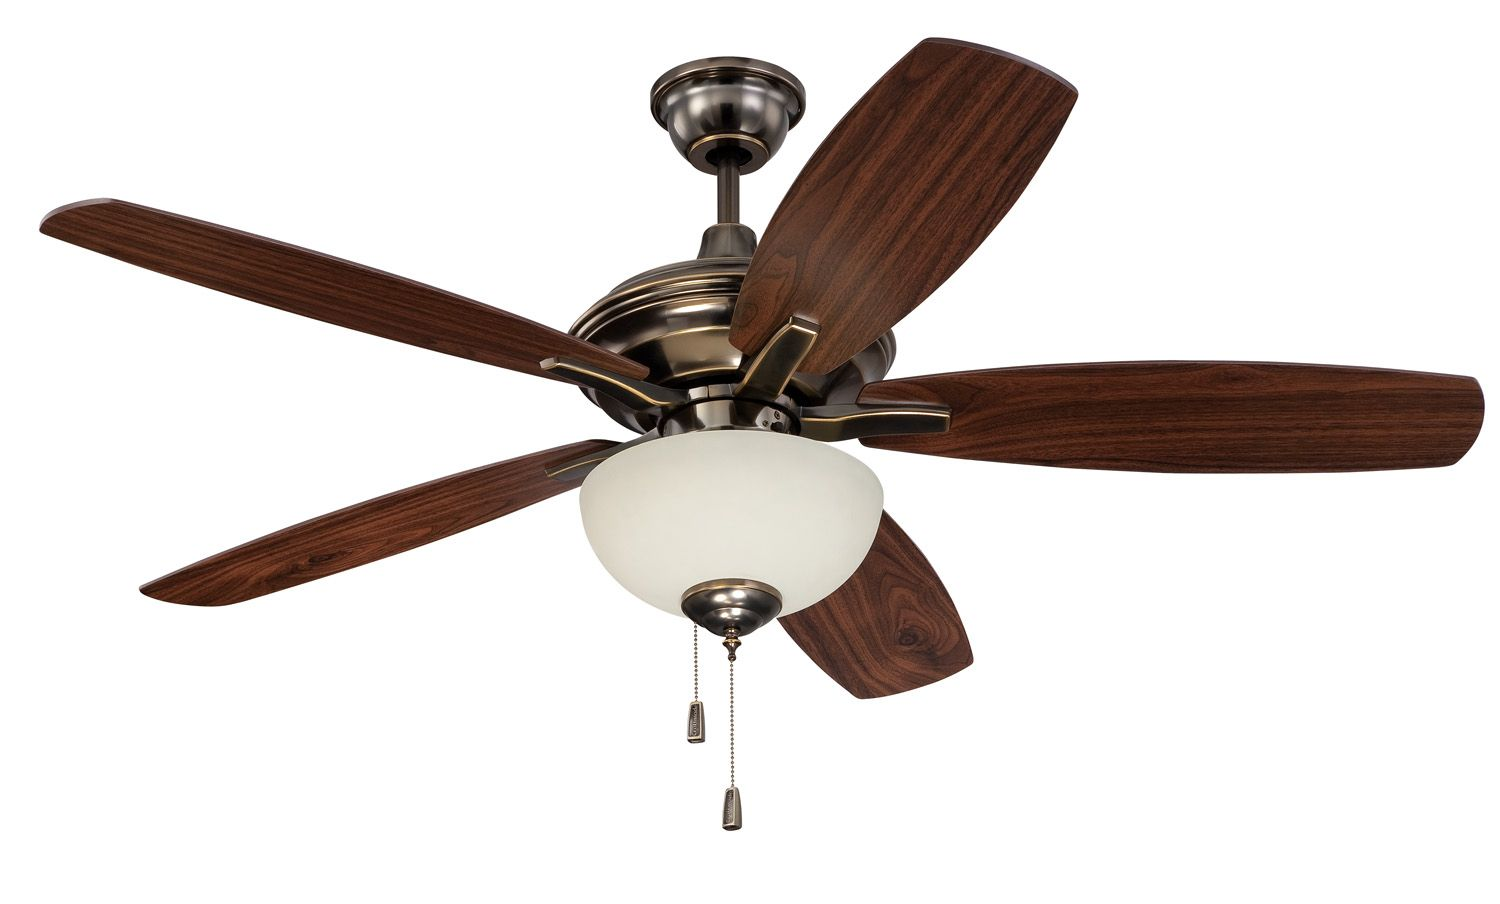 Craftmade copeland 52 ceiling fan with blades and light cn52lb5 craftmade copeland 52 ceiling fan with blades and light cn52lb5 aloadofball Image collections